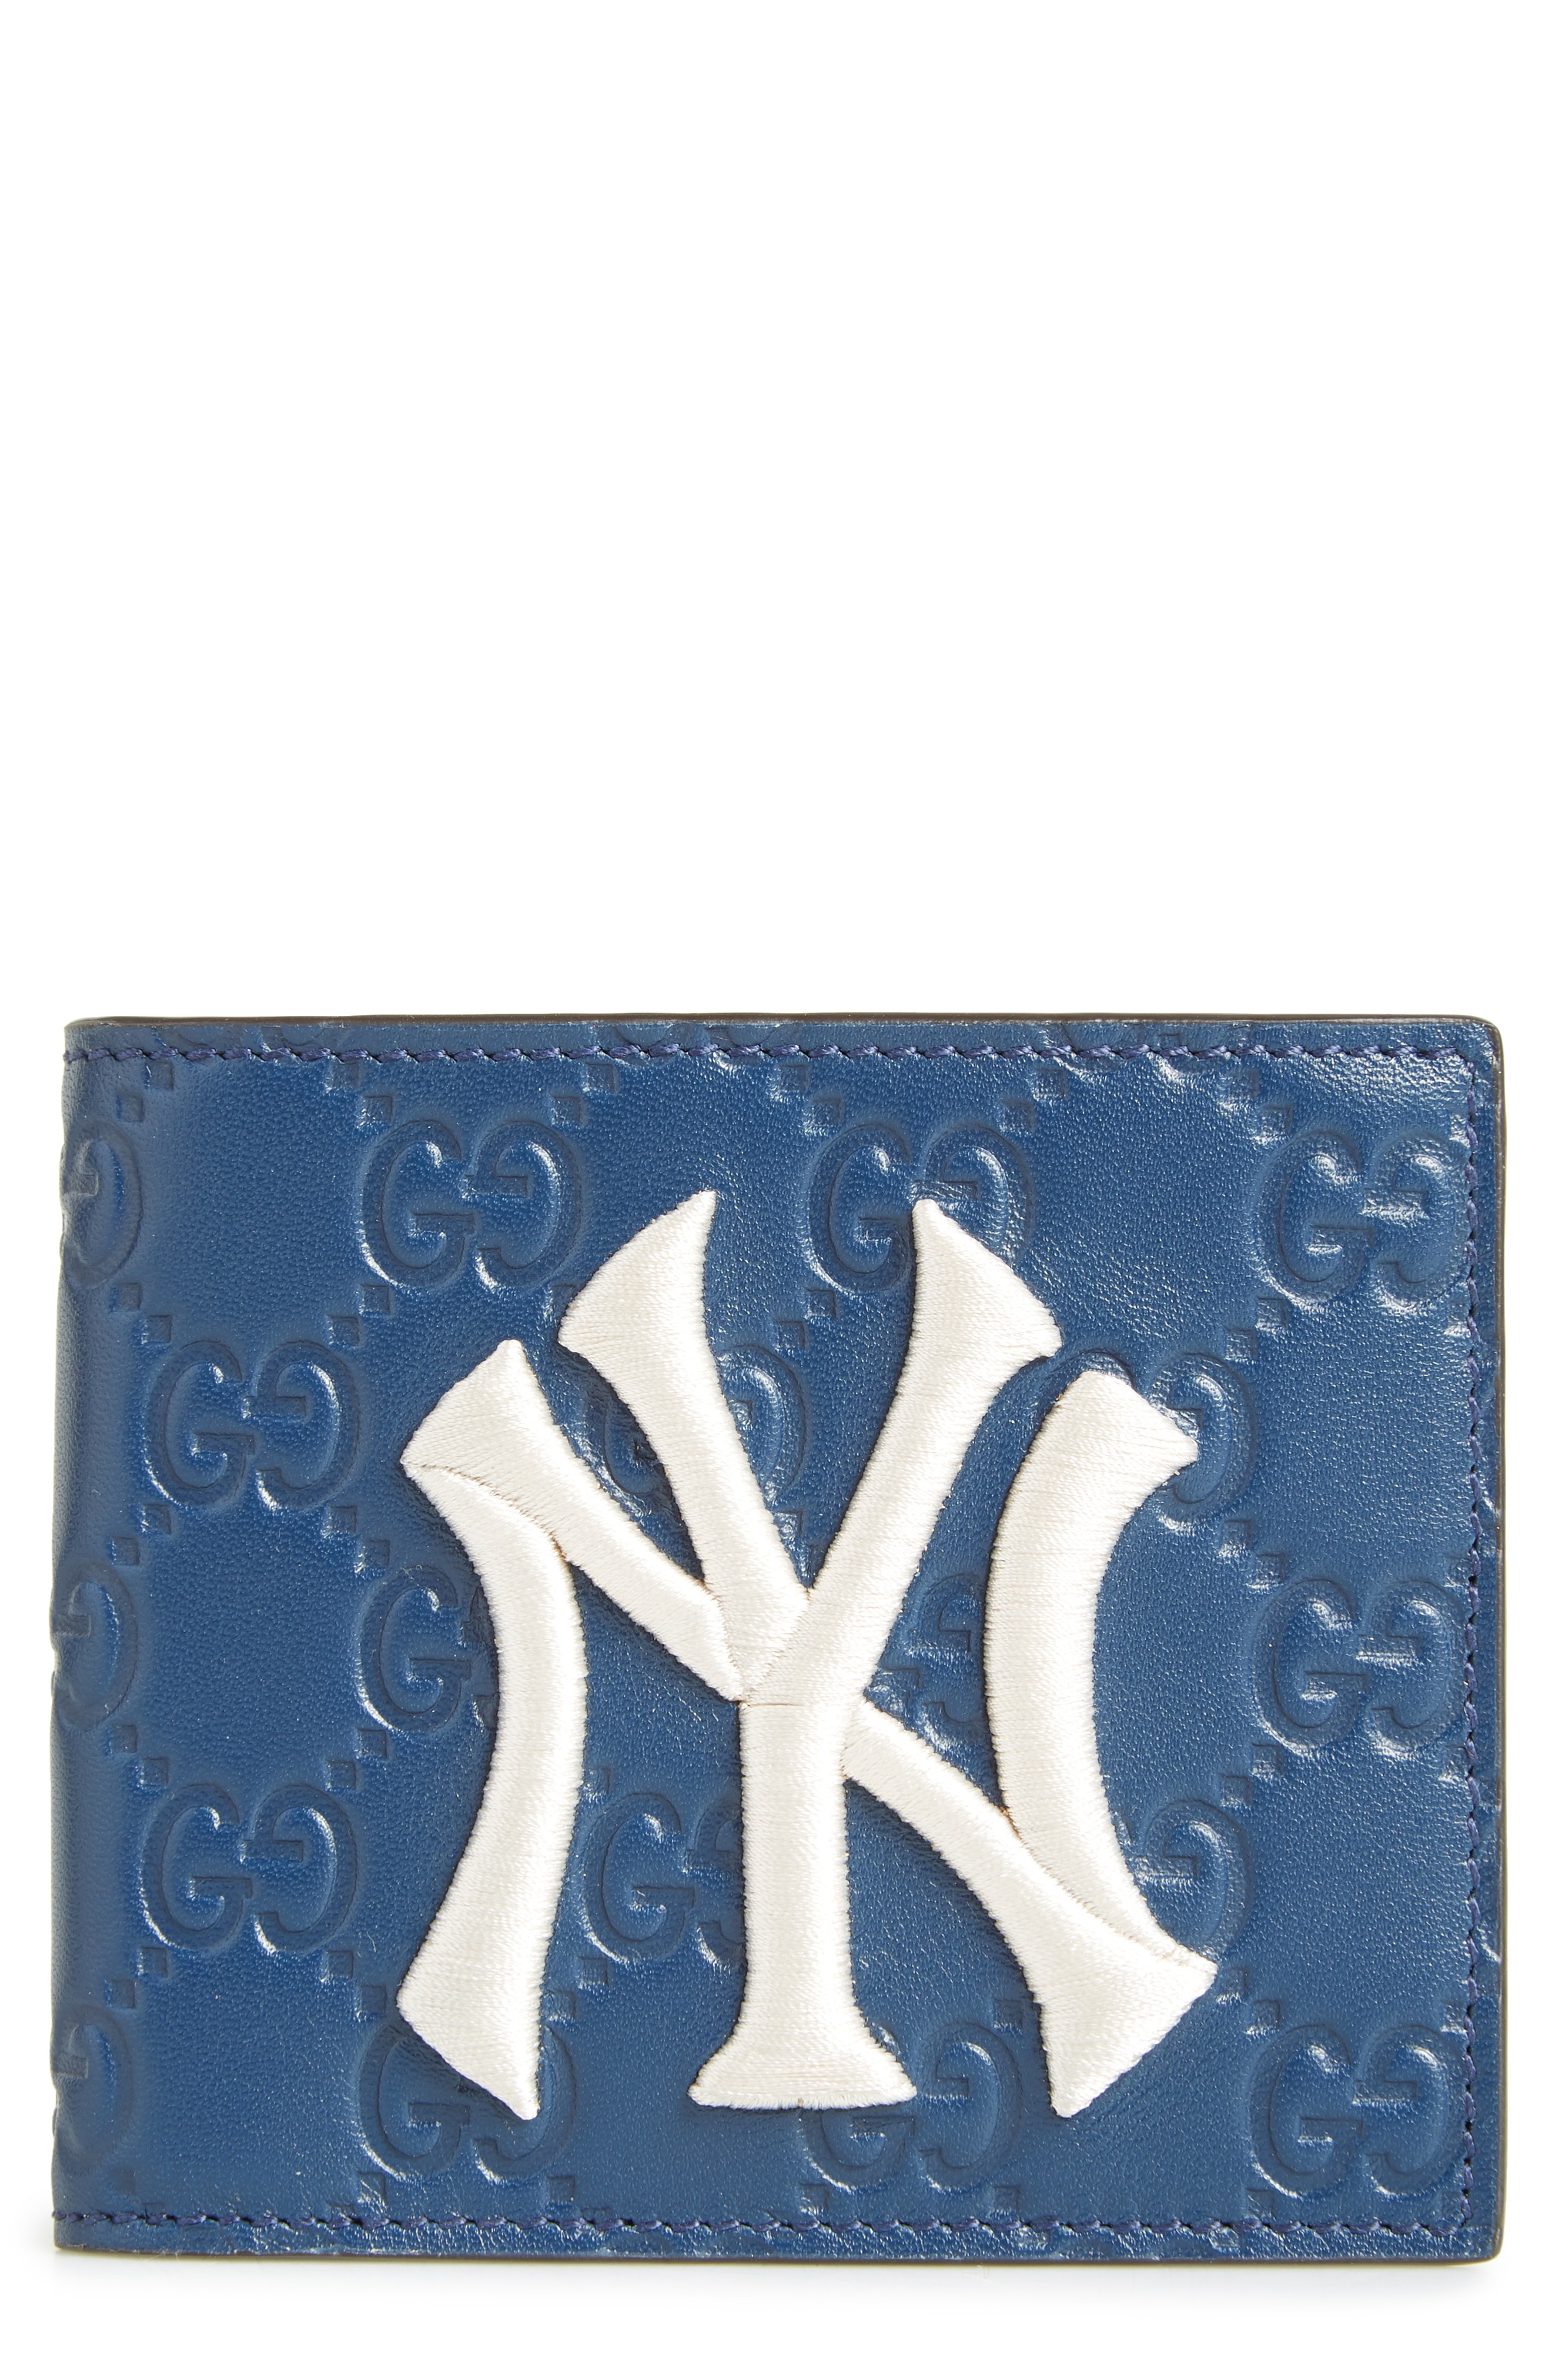 0a4391631b7c Men's Gucci New York Yankees Leather Wallet – Blue | The Fashionisto